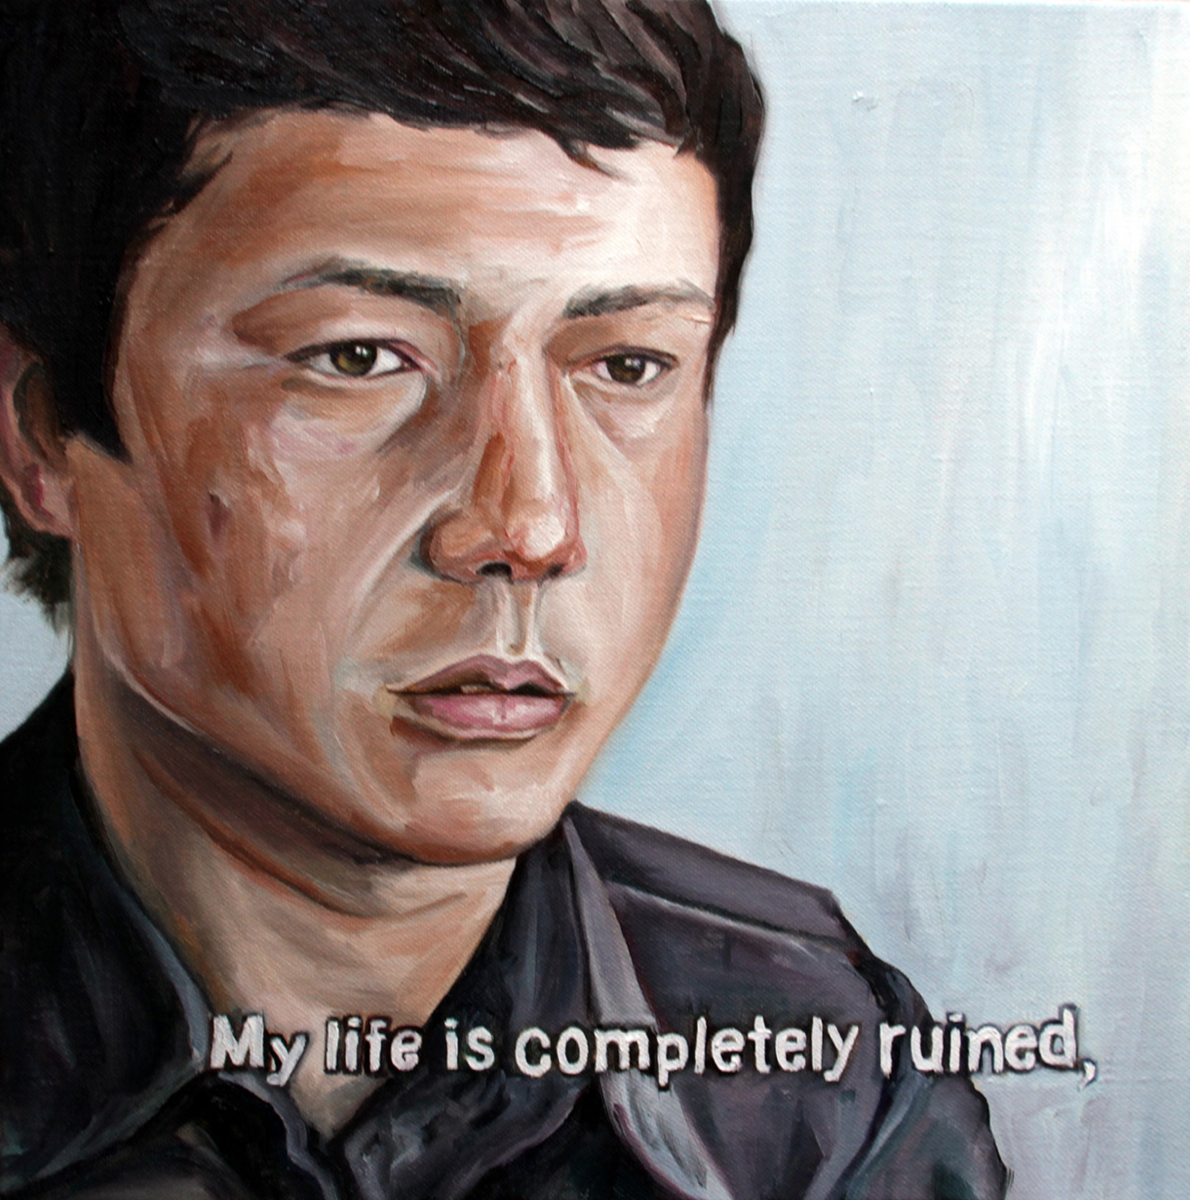 Untitled (My life is completely ruined,) Oil on Canvas  15.5 x 15.5 Inches  2013 2,000 USD